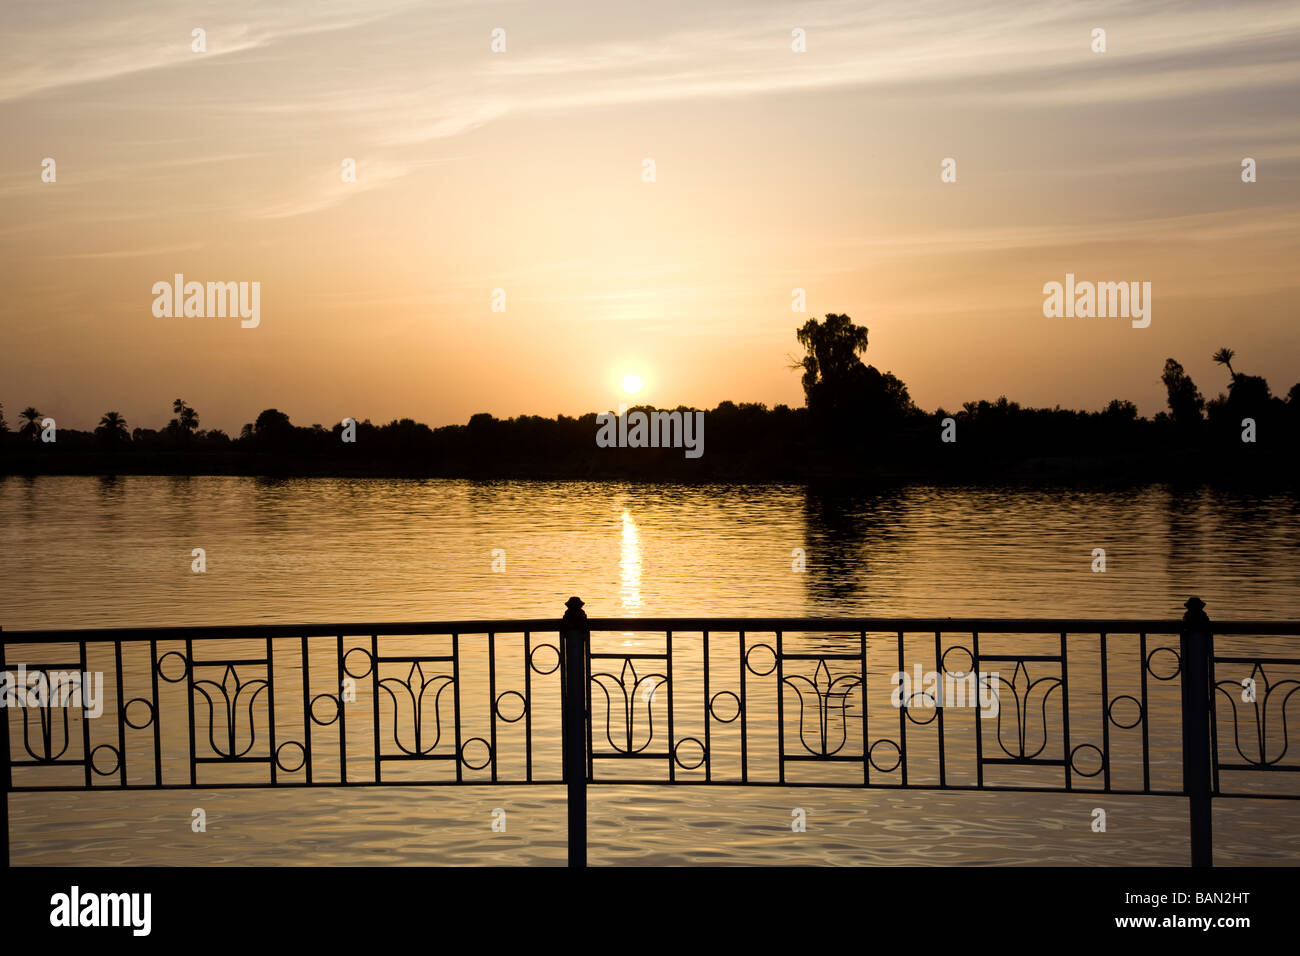 Sunset over the River Nile Luxor Egypt Africa - Stock Image